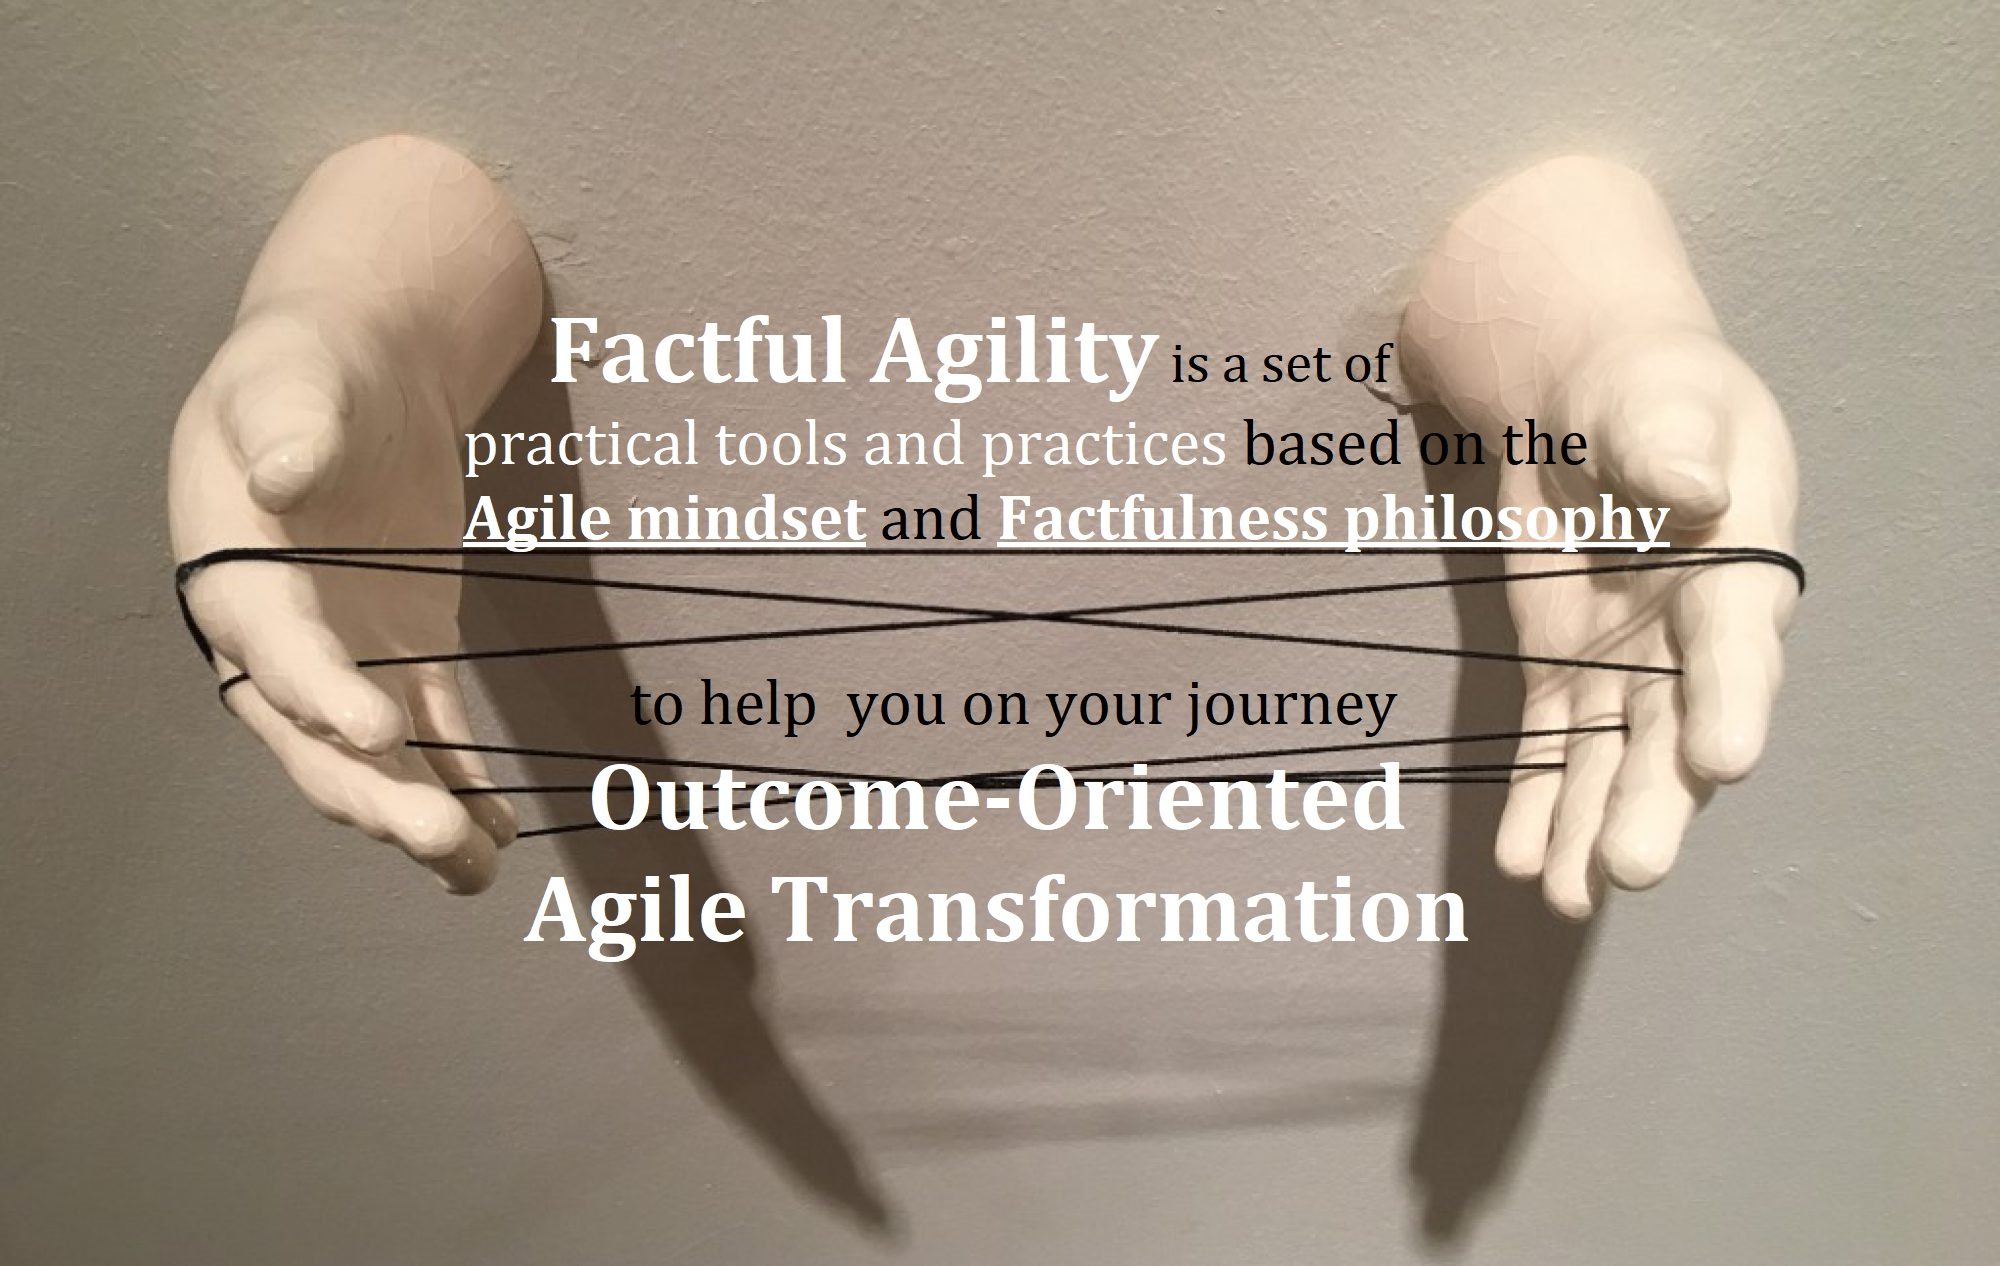 Factful Agility